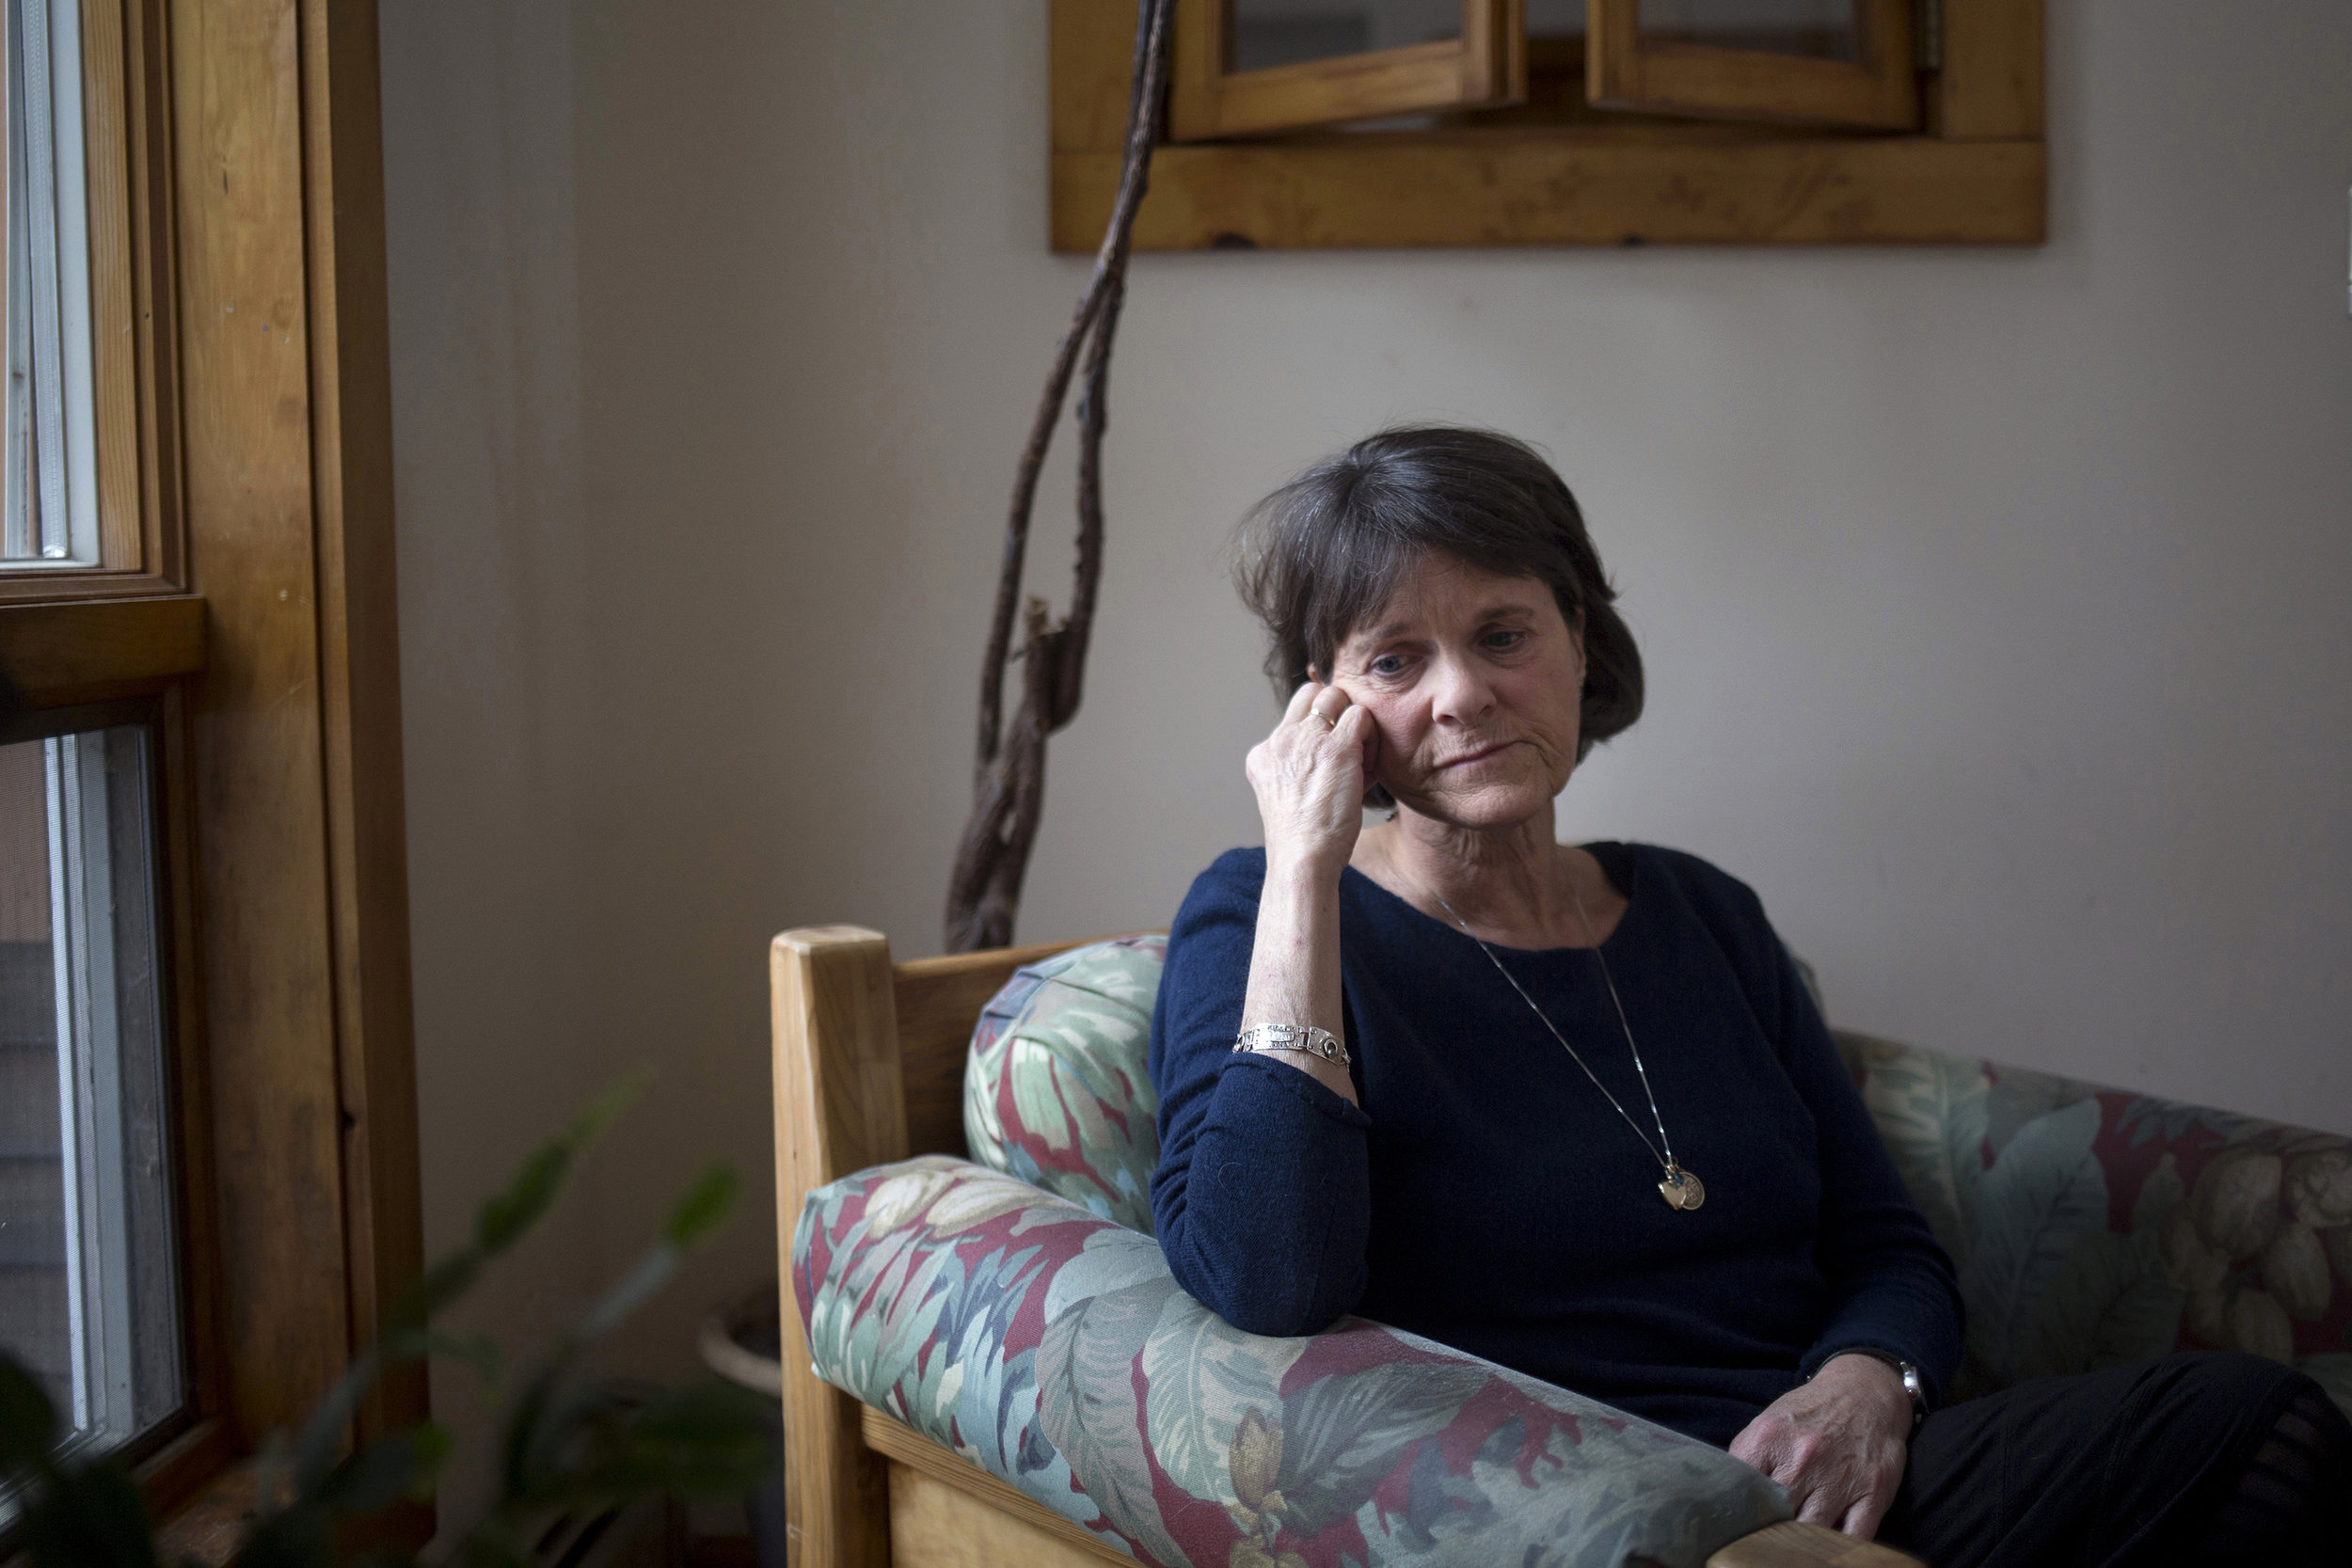 Lynn Ouellette at her home in Brunswick, Maine. She wears some of her son Brendan Keating's ashes in a heart-shaped locket around her neck every day. Brendan died from an overdose on Dec. 16, 2013. He was 22 years old.